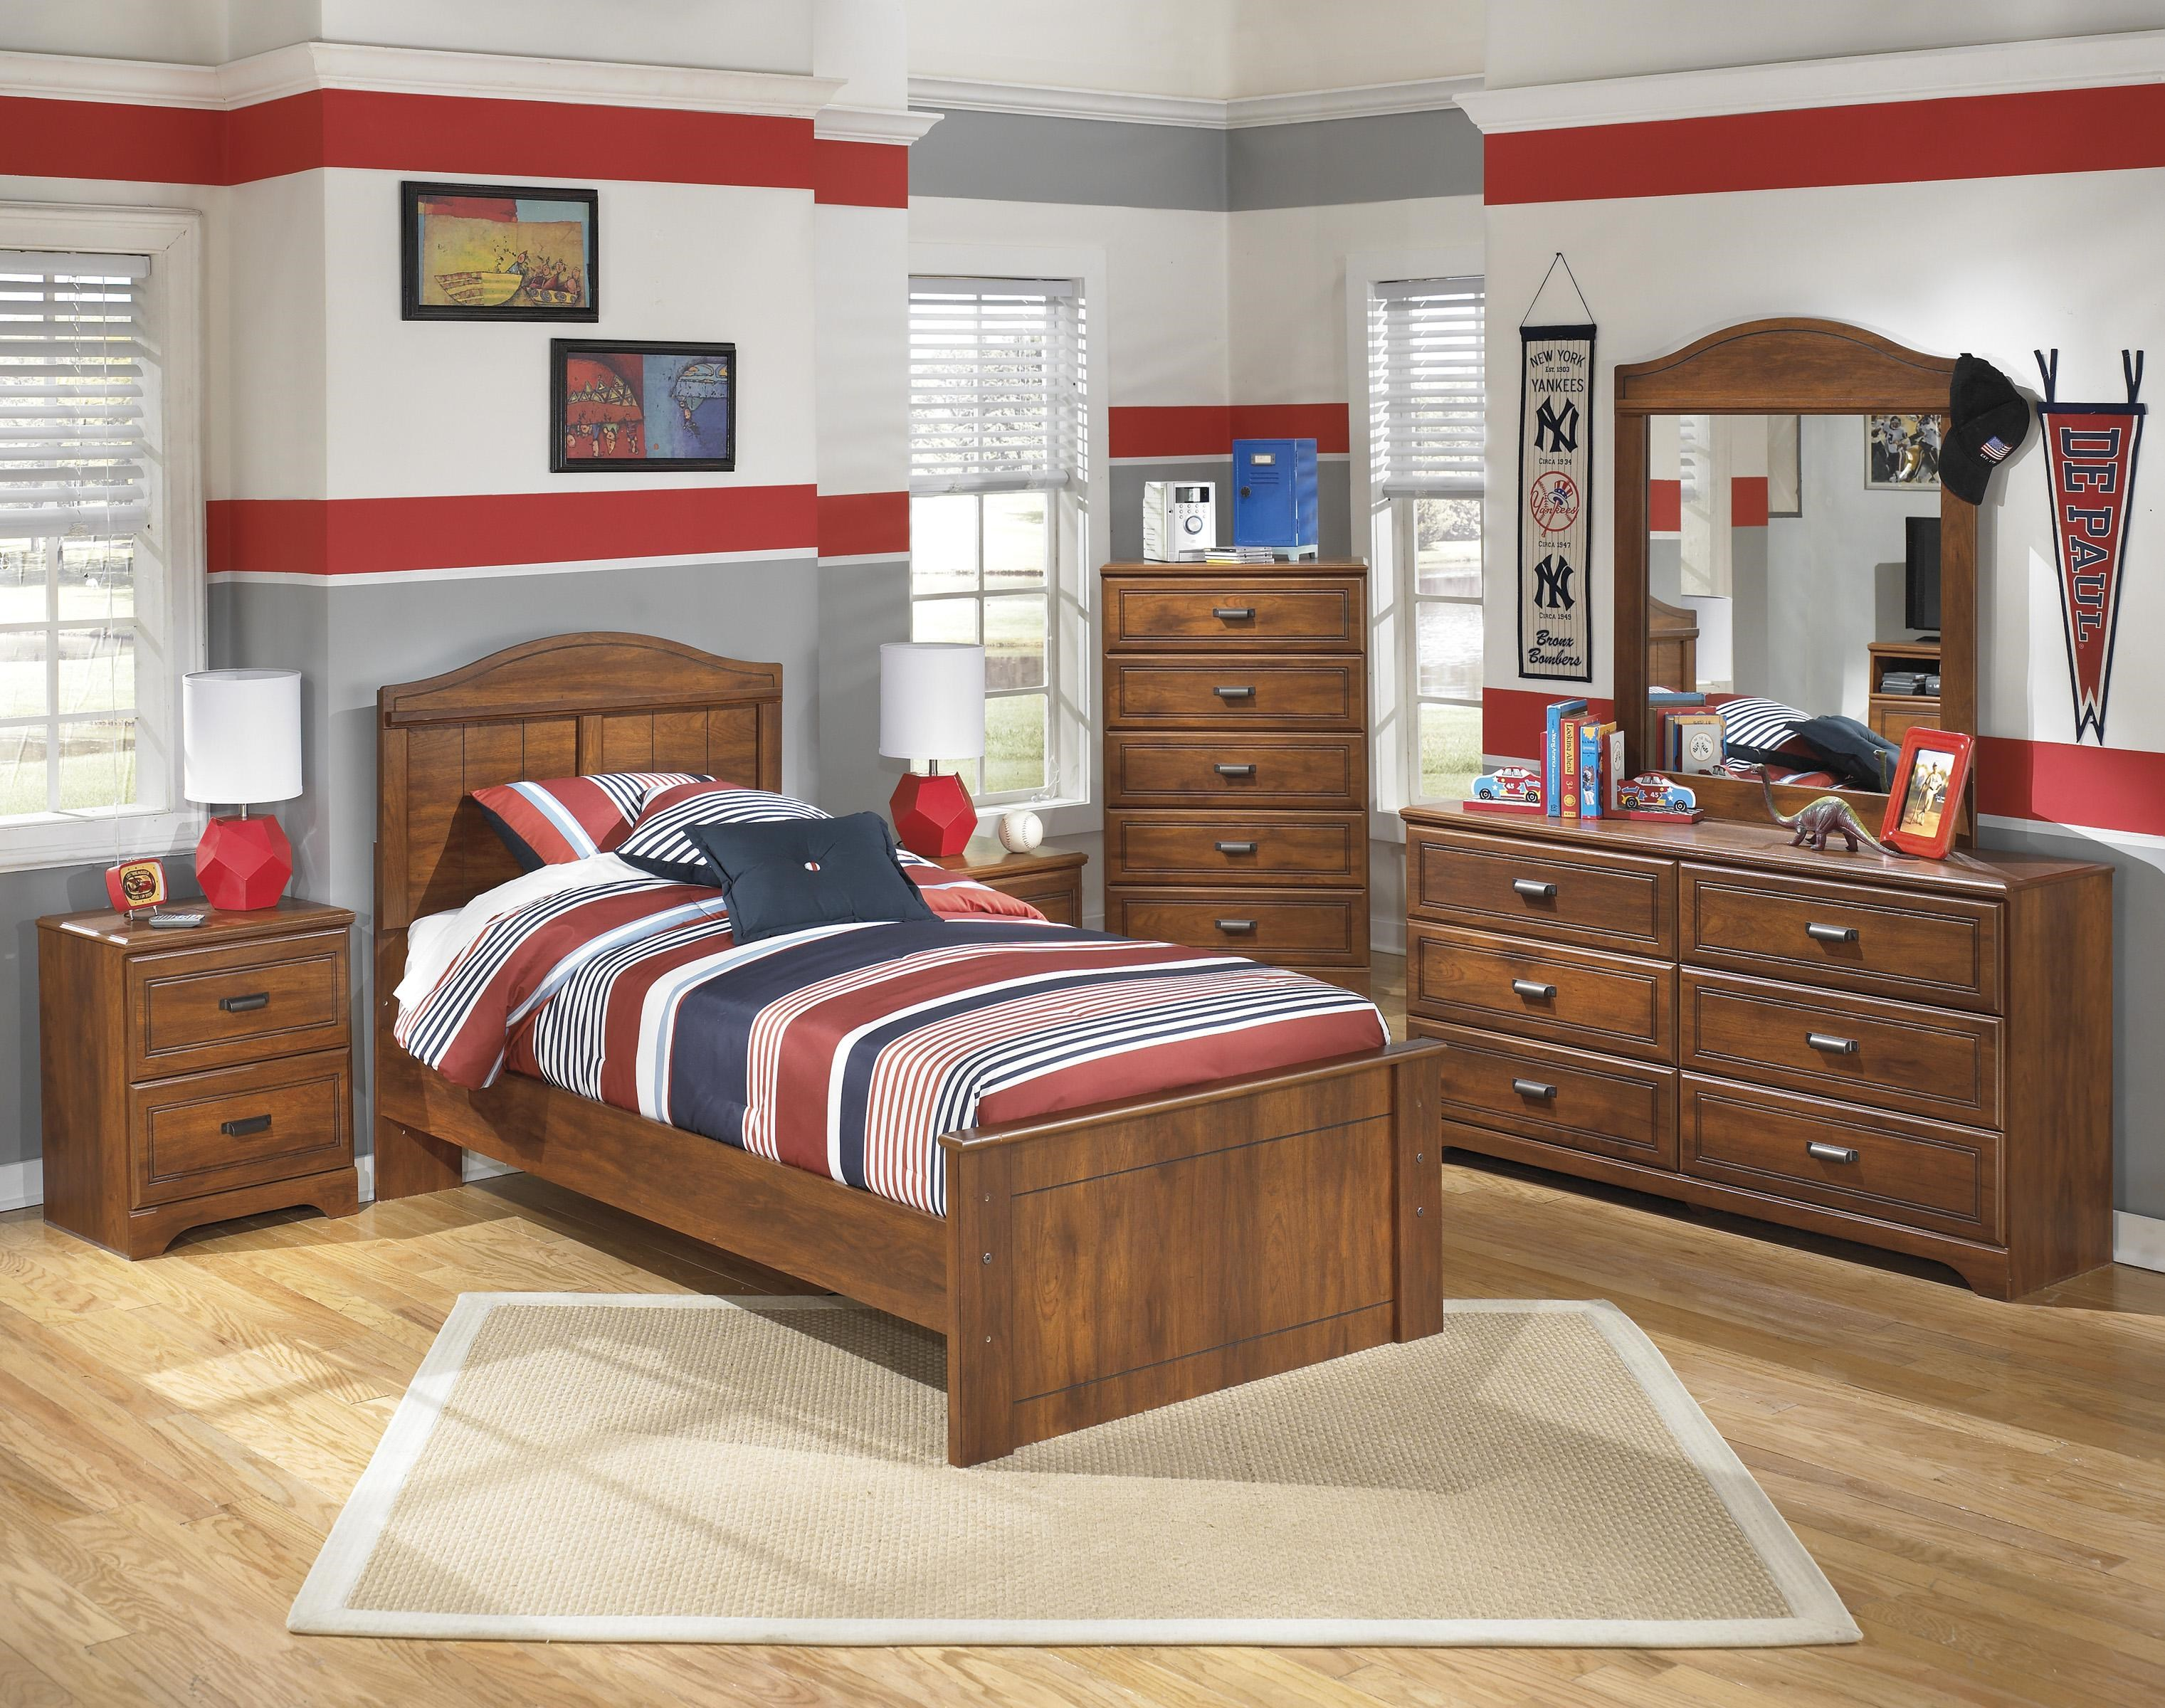 Signature Design by Ashley Barchan Twin Bedroom Group